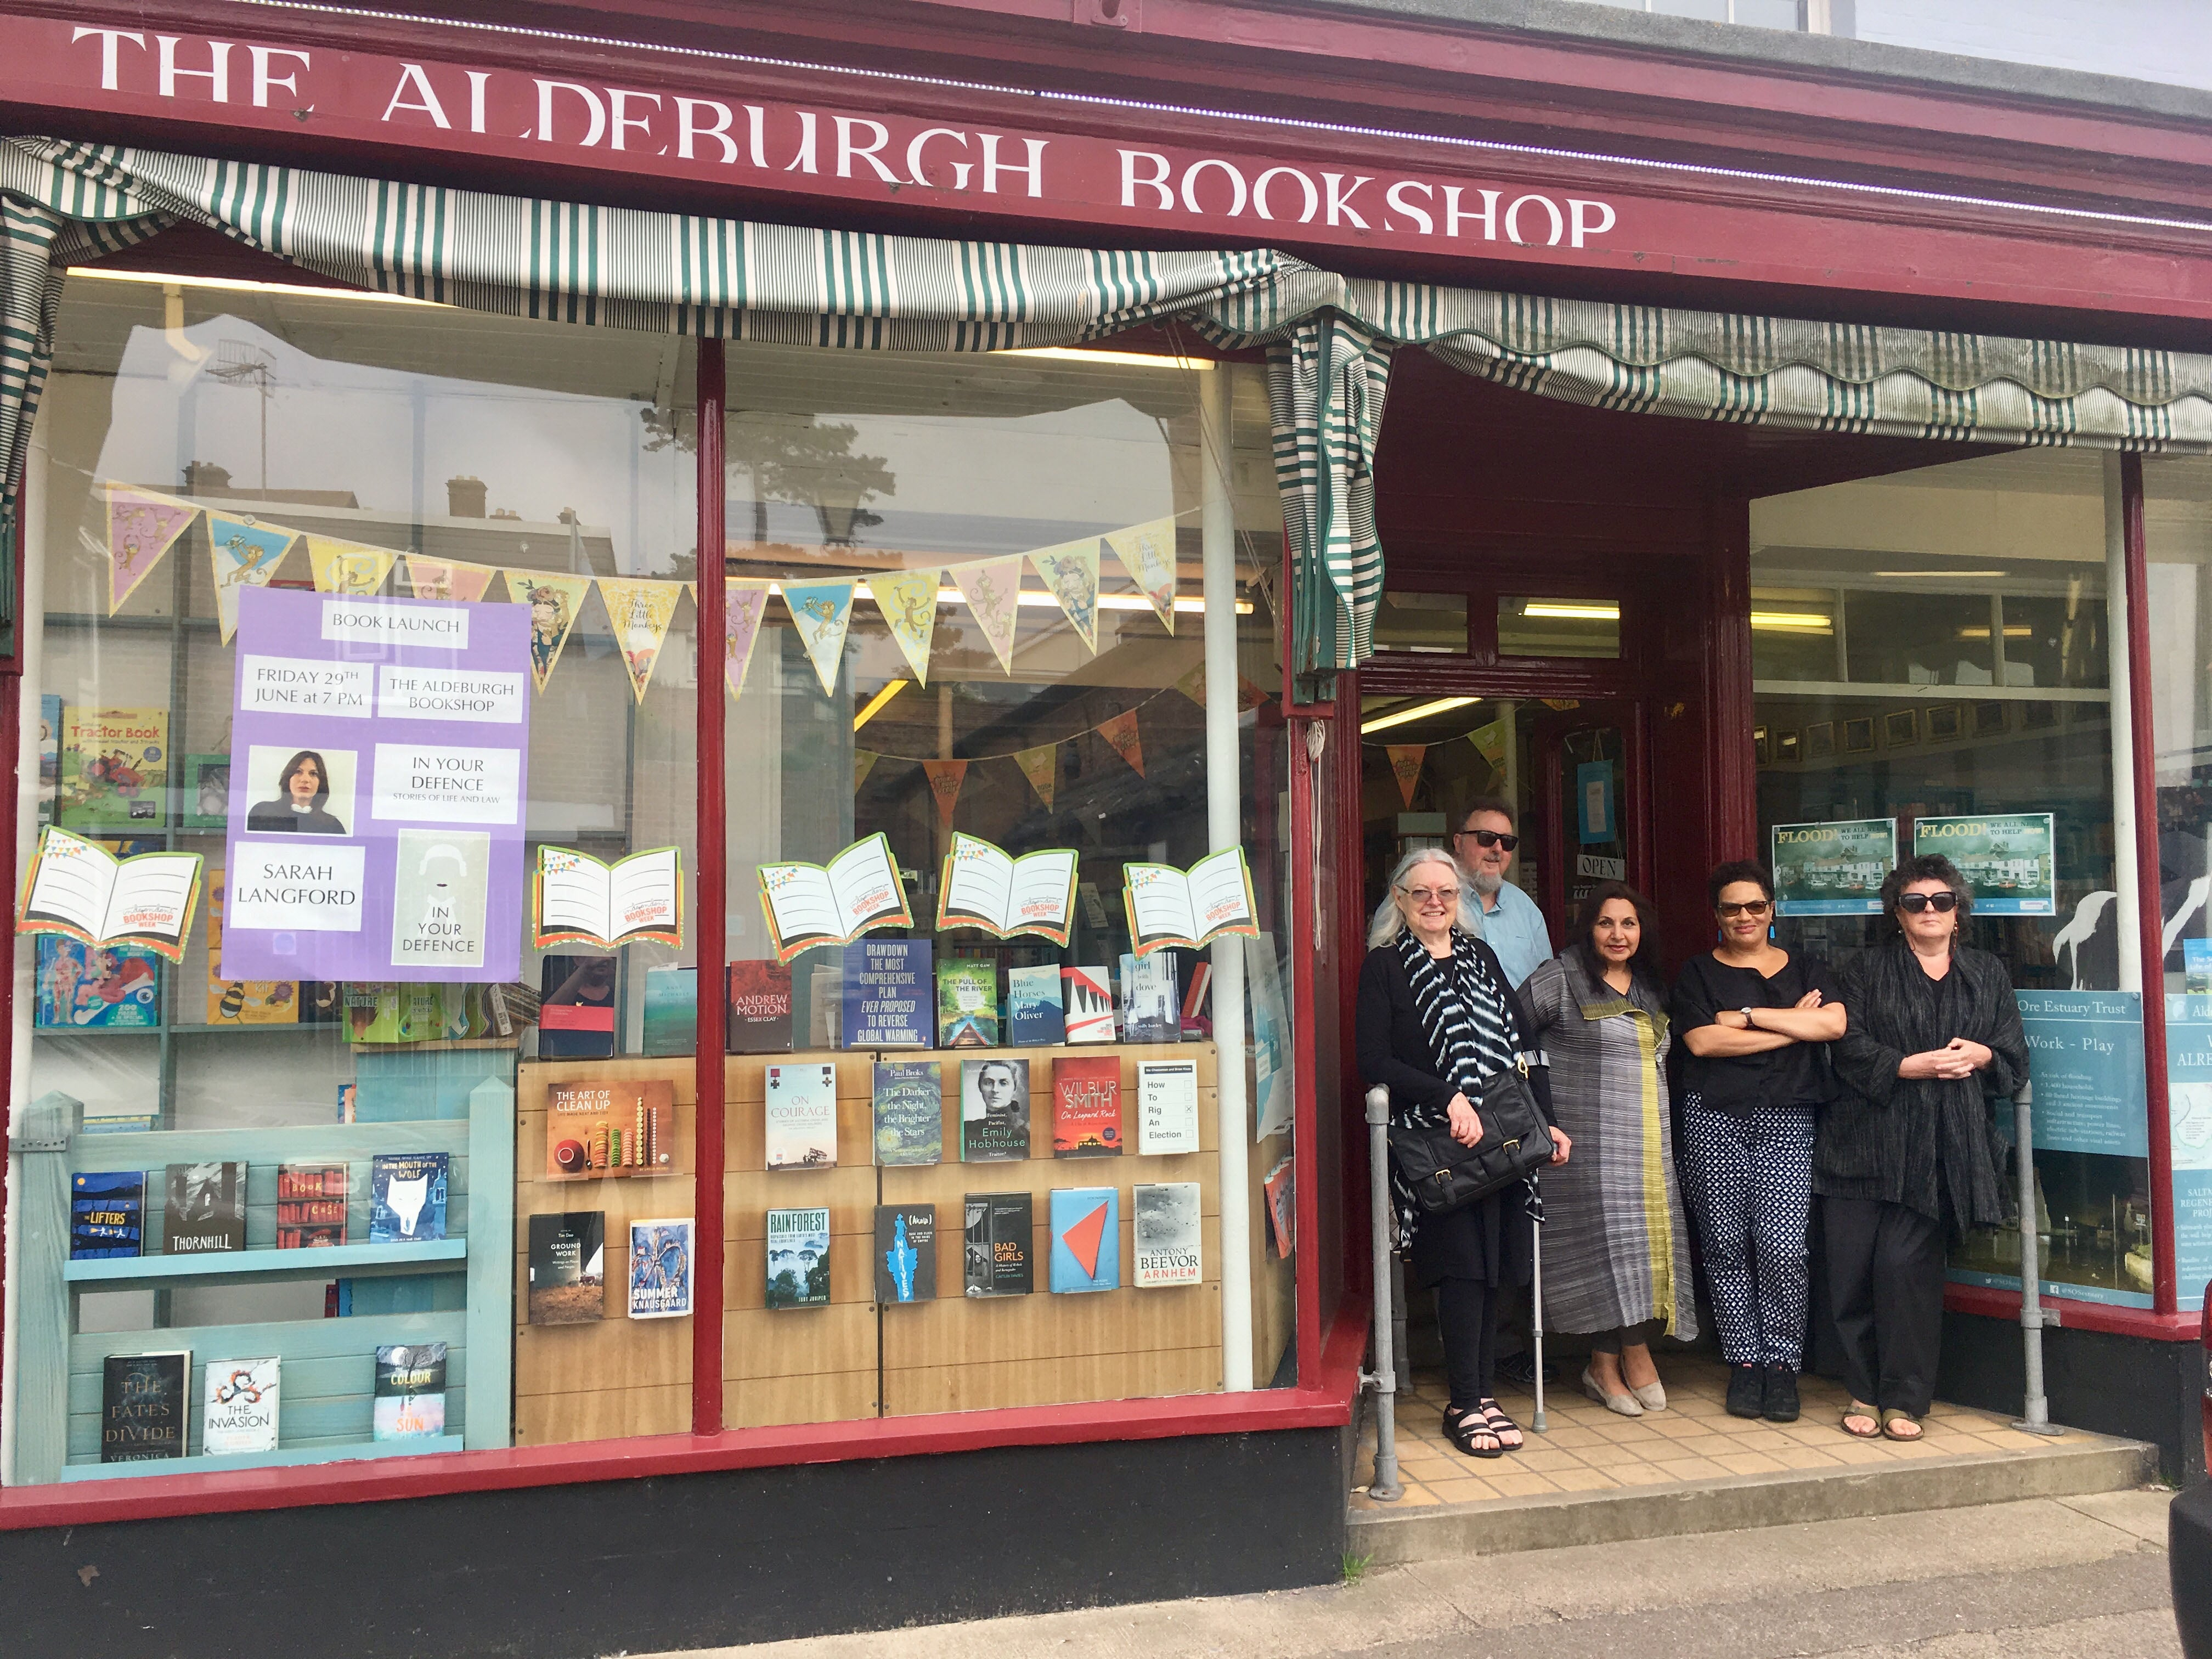 The poets outside the Aldeburgh bookshop